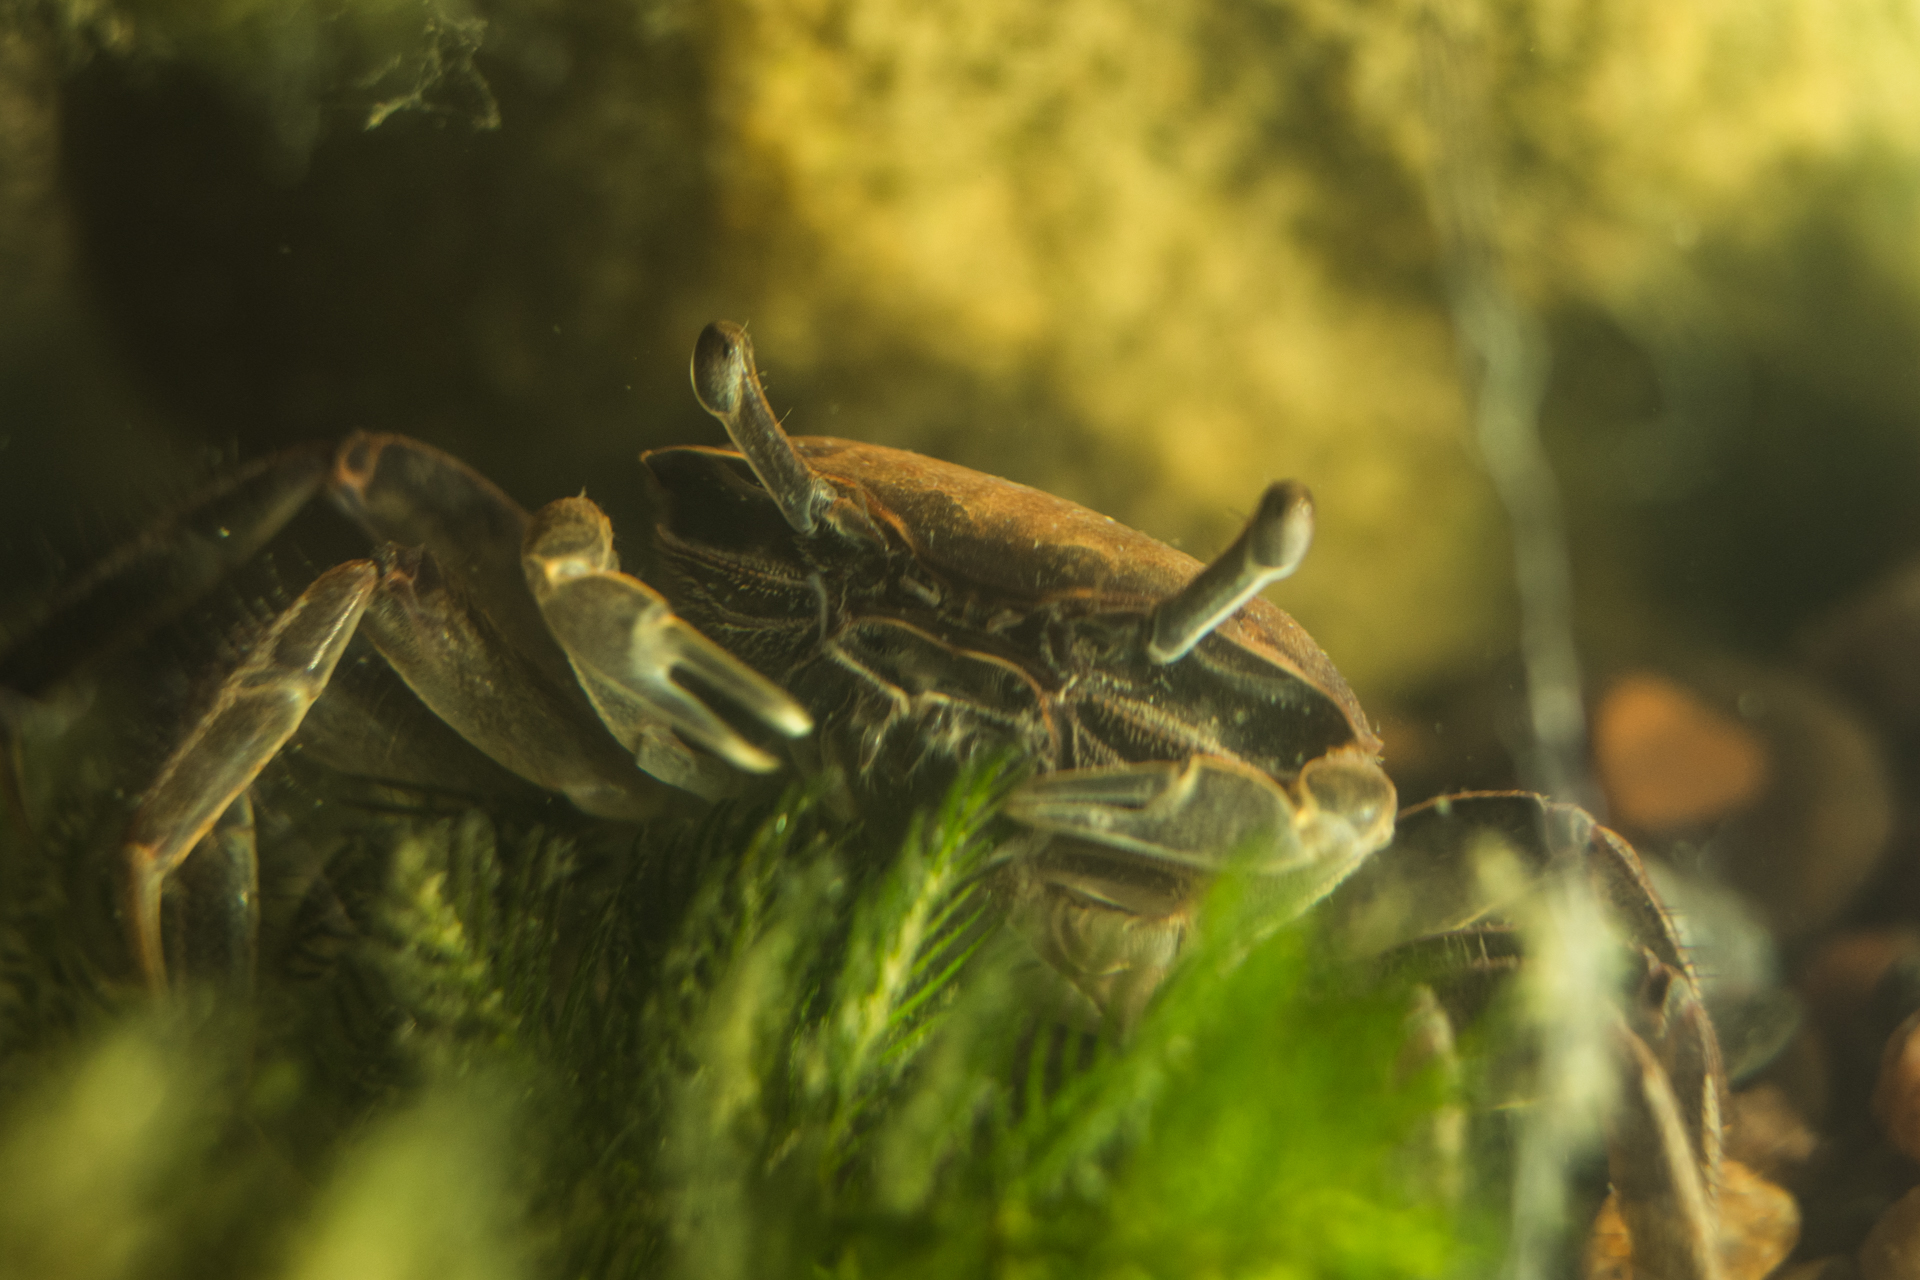 We adopted 4 tiny crabs and got them a fancy tank from Craigslist